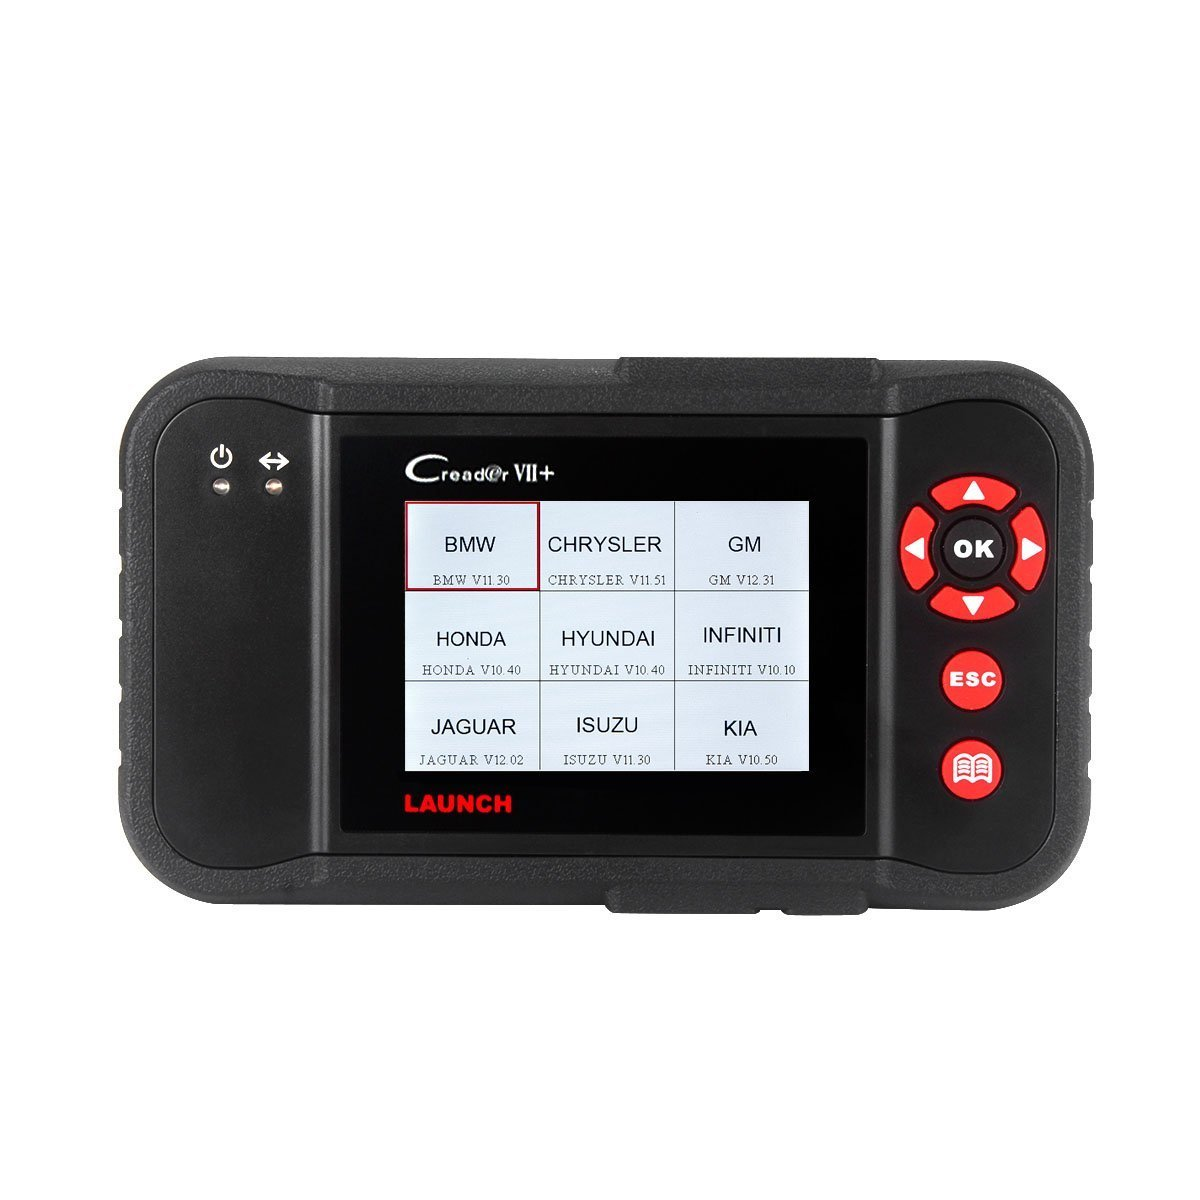 Launch X431 Creader VII+ ( CRP123) Auto Code Reader EOBD, OBD2 Scanner Scan Tool Testing Engine/Transmission/ABS/ Airbag System Update via PC